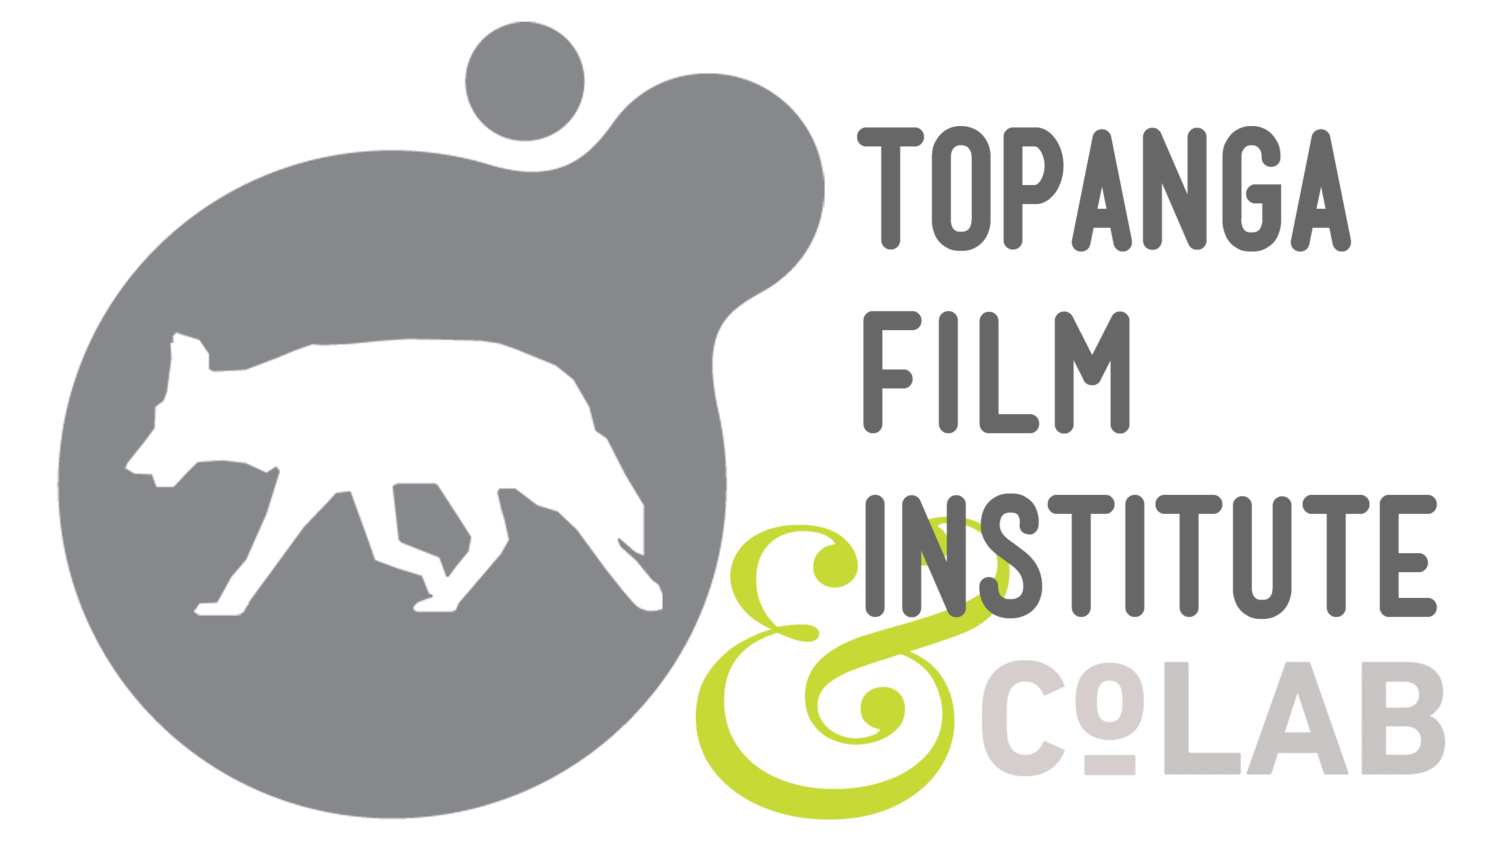 Topanga Film Institute